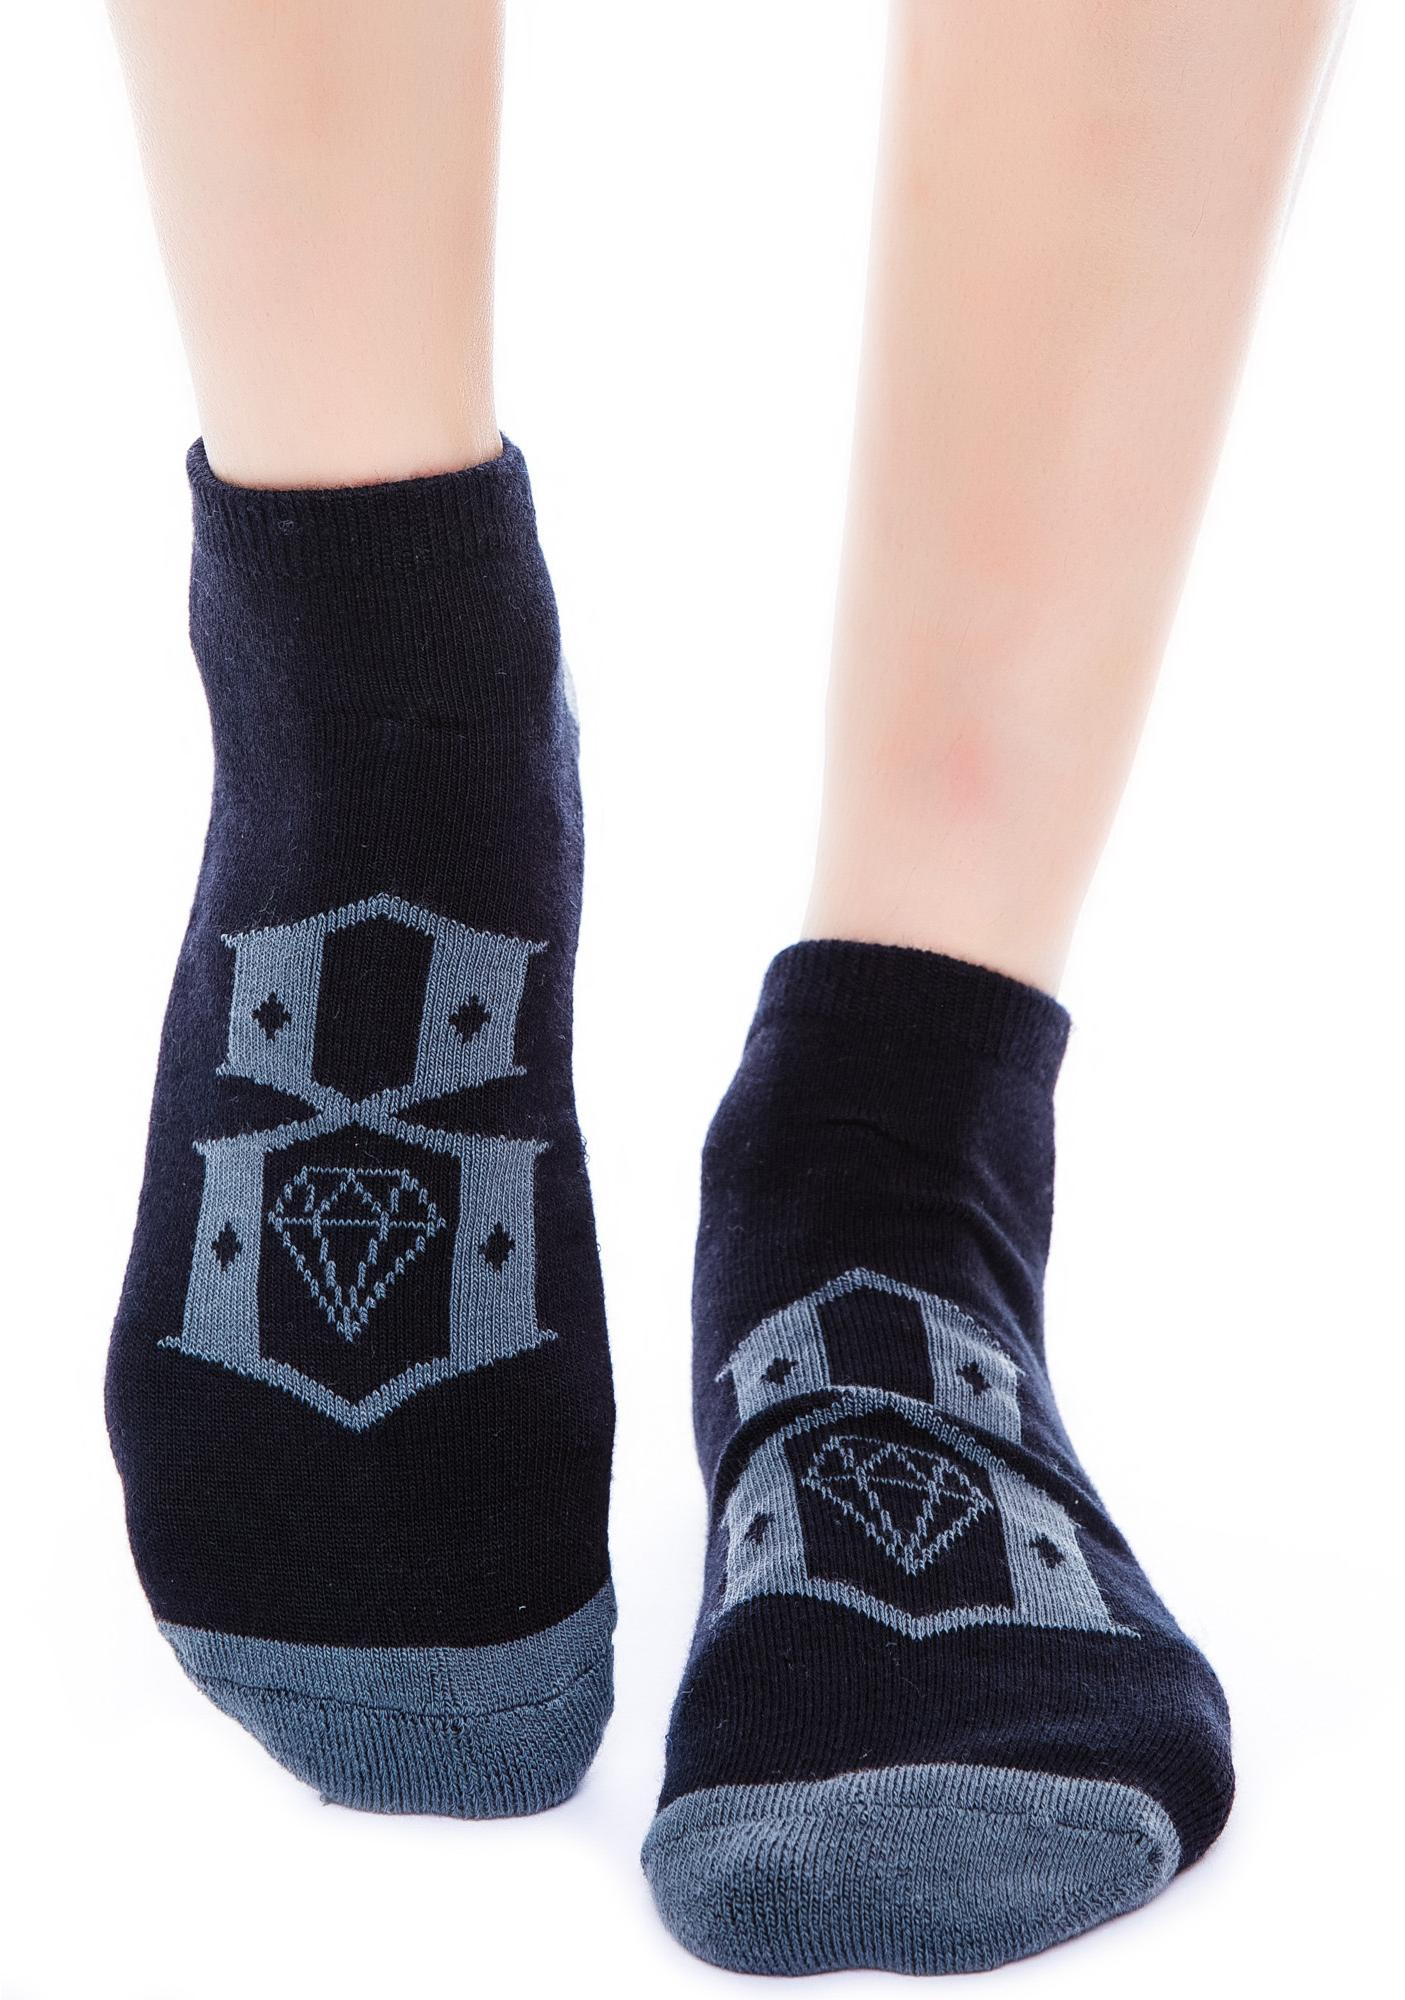 Rebel8 Stealth Socks